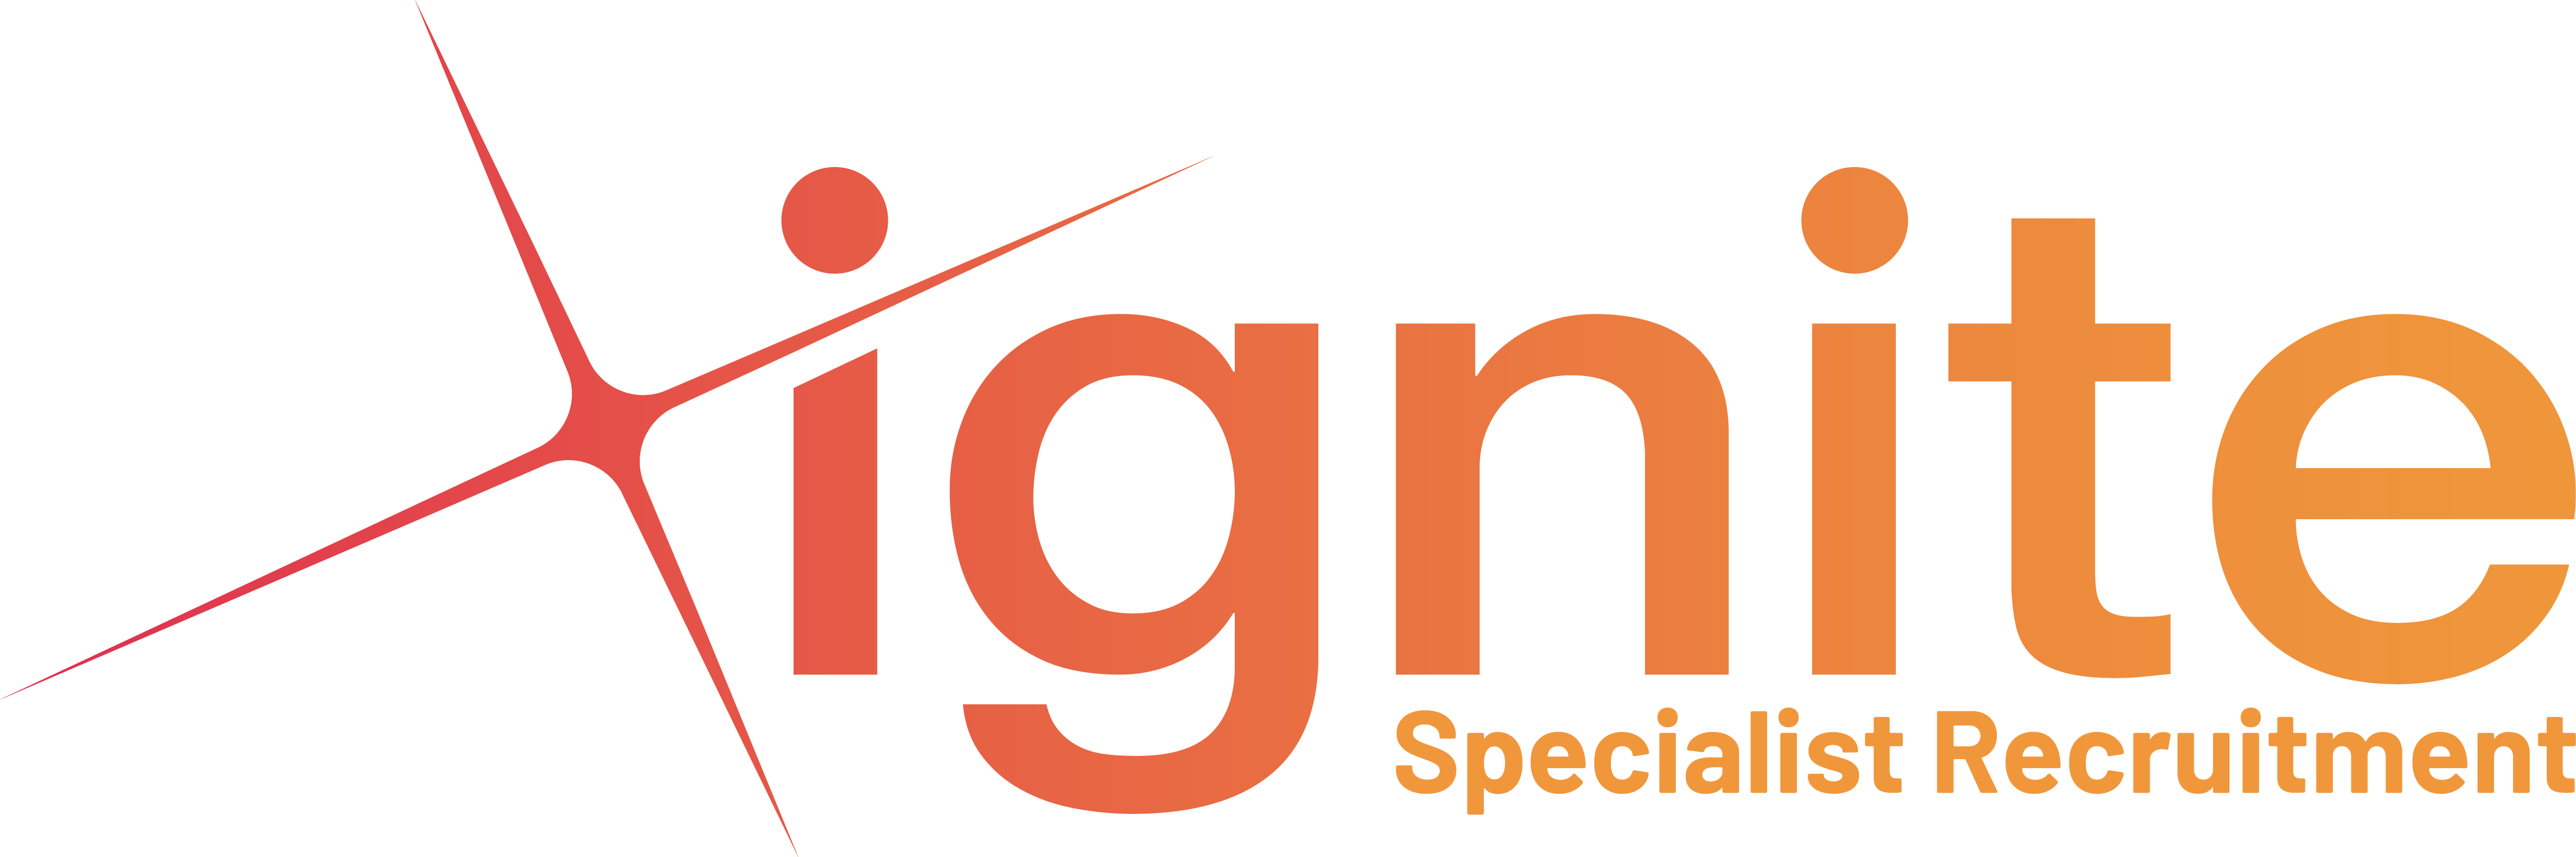 Ignite Logo - Gradient with SR